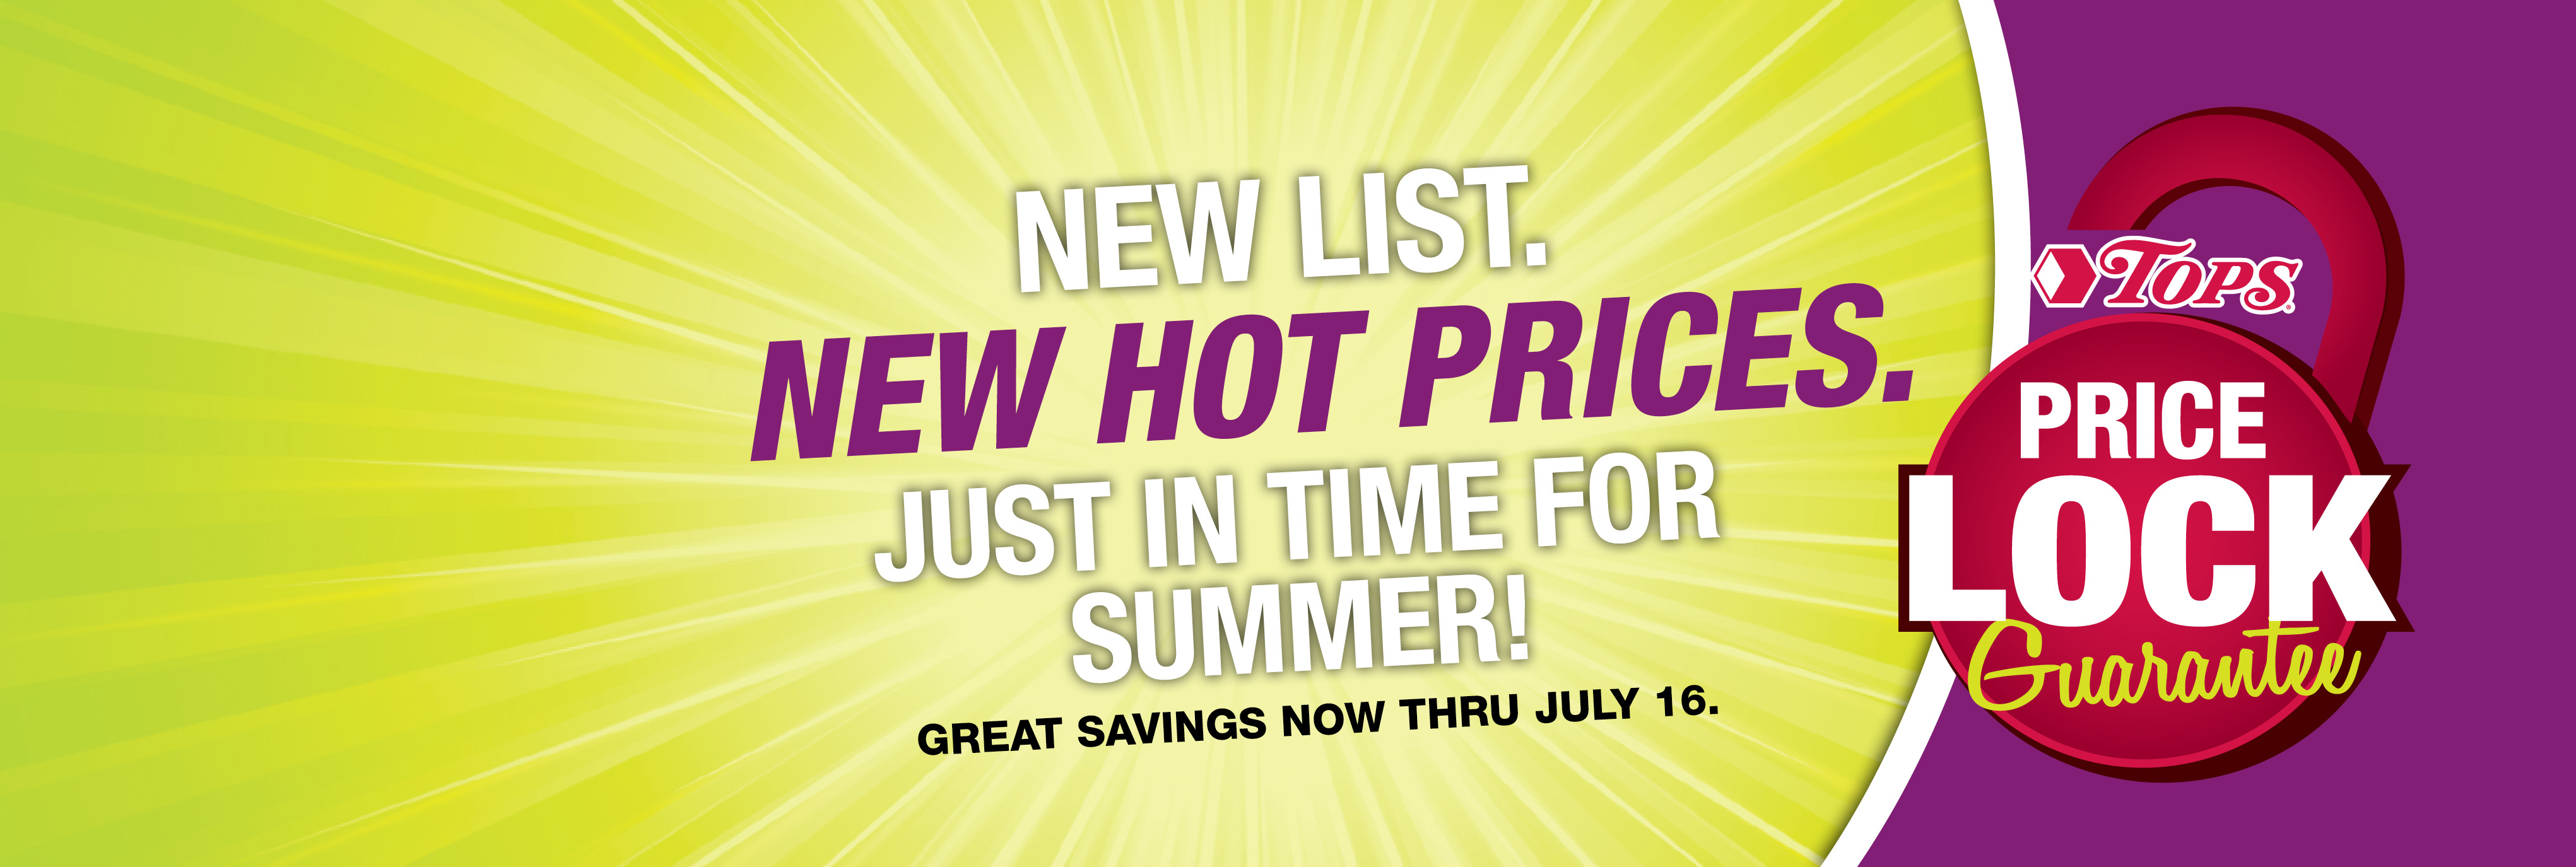 Price Locked Savings Now Thru July 16th